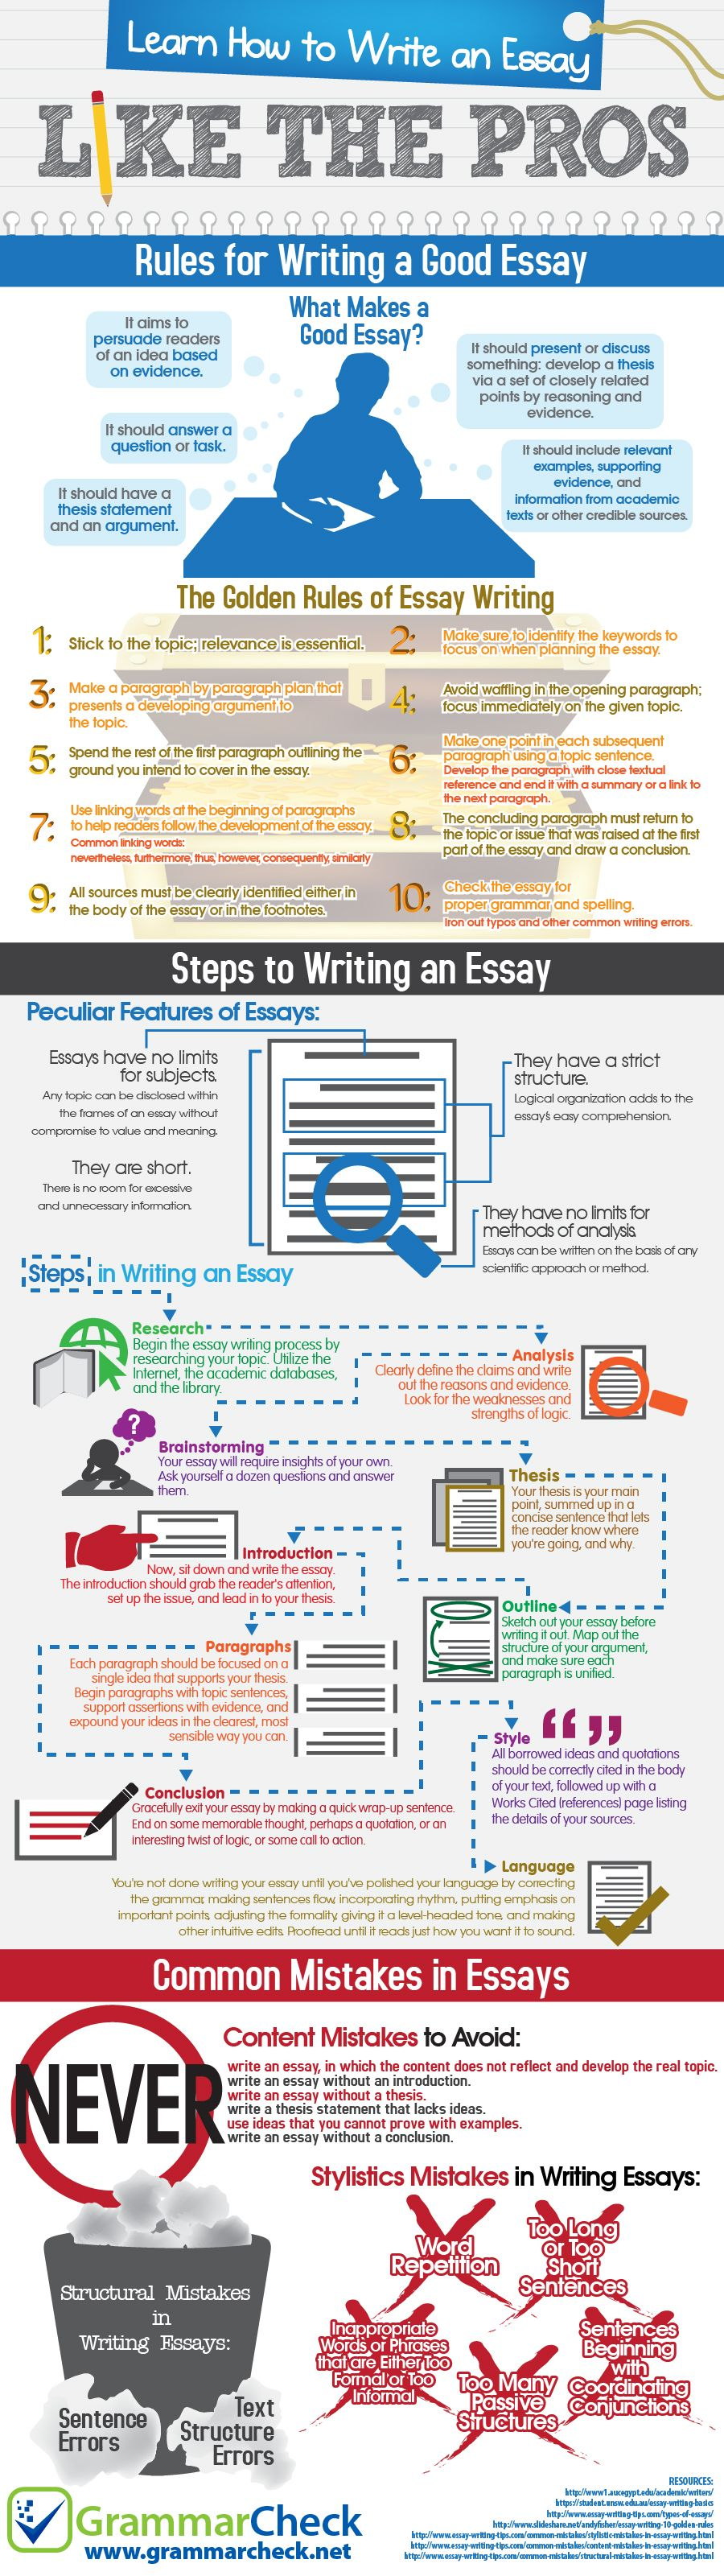 Good Proposal Essay Topics How To Write An Essay Like The Pros Infographic Example English Essay also How To Write An Essay For High School How To Write An Essay Like The Pros Infographic  About Writing  Essay Good Health